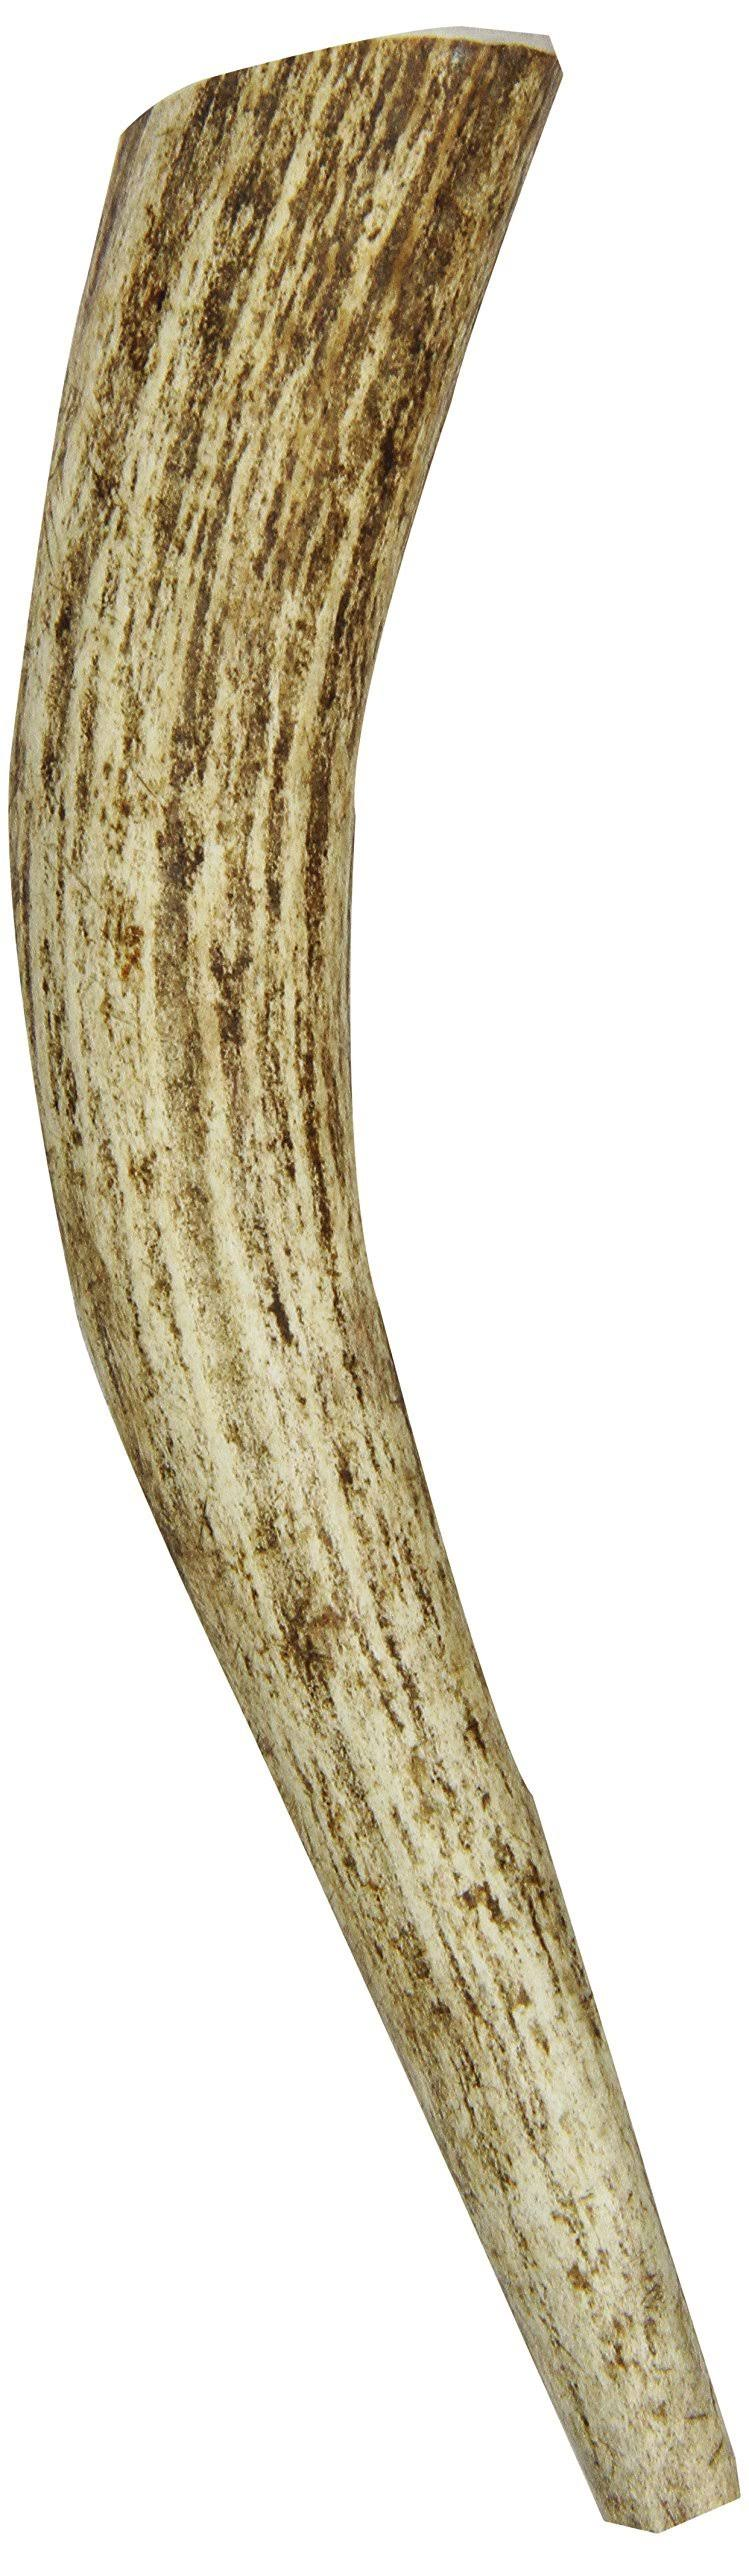 Newts Chews Antler - Large